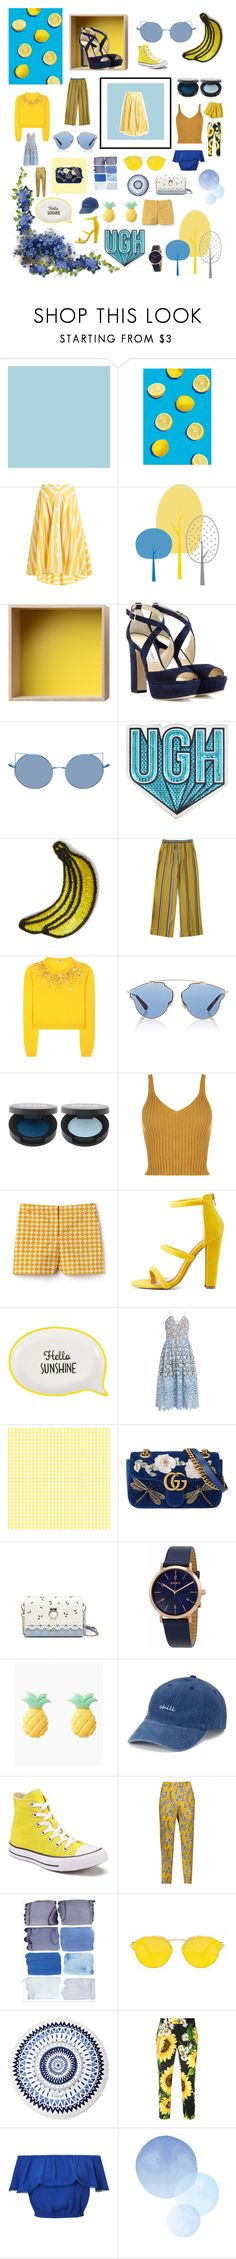 """""""💙 & 💛"""" by sunshineirwinx ❤ liked on Polyvore featuring Thierry Colson, Muuto, Jimmy Choo, Anya Hindmarch, Kipling, Miu Miu, Christian Dior, WearAll, Lacoste and Shoe Republic LA"""